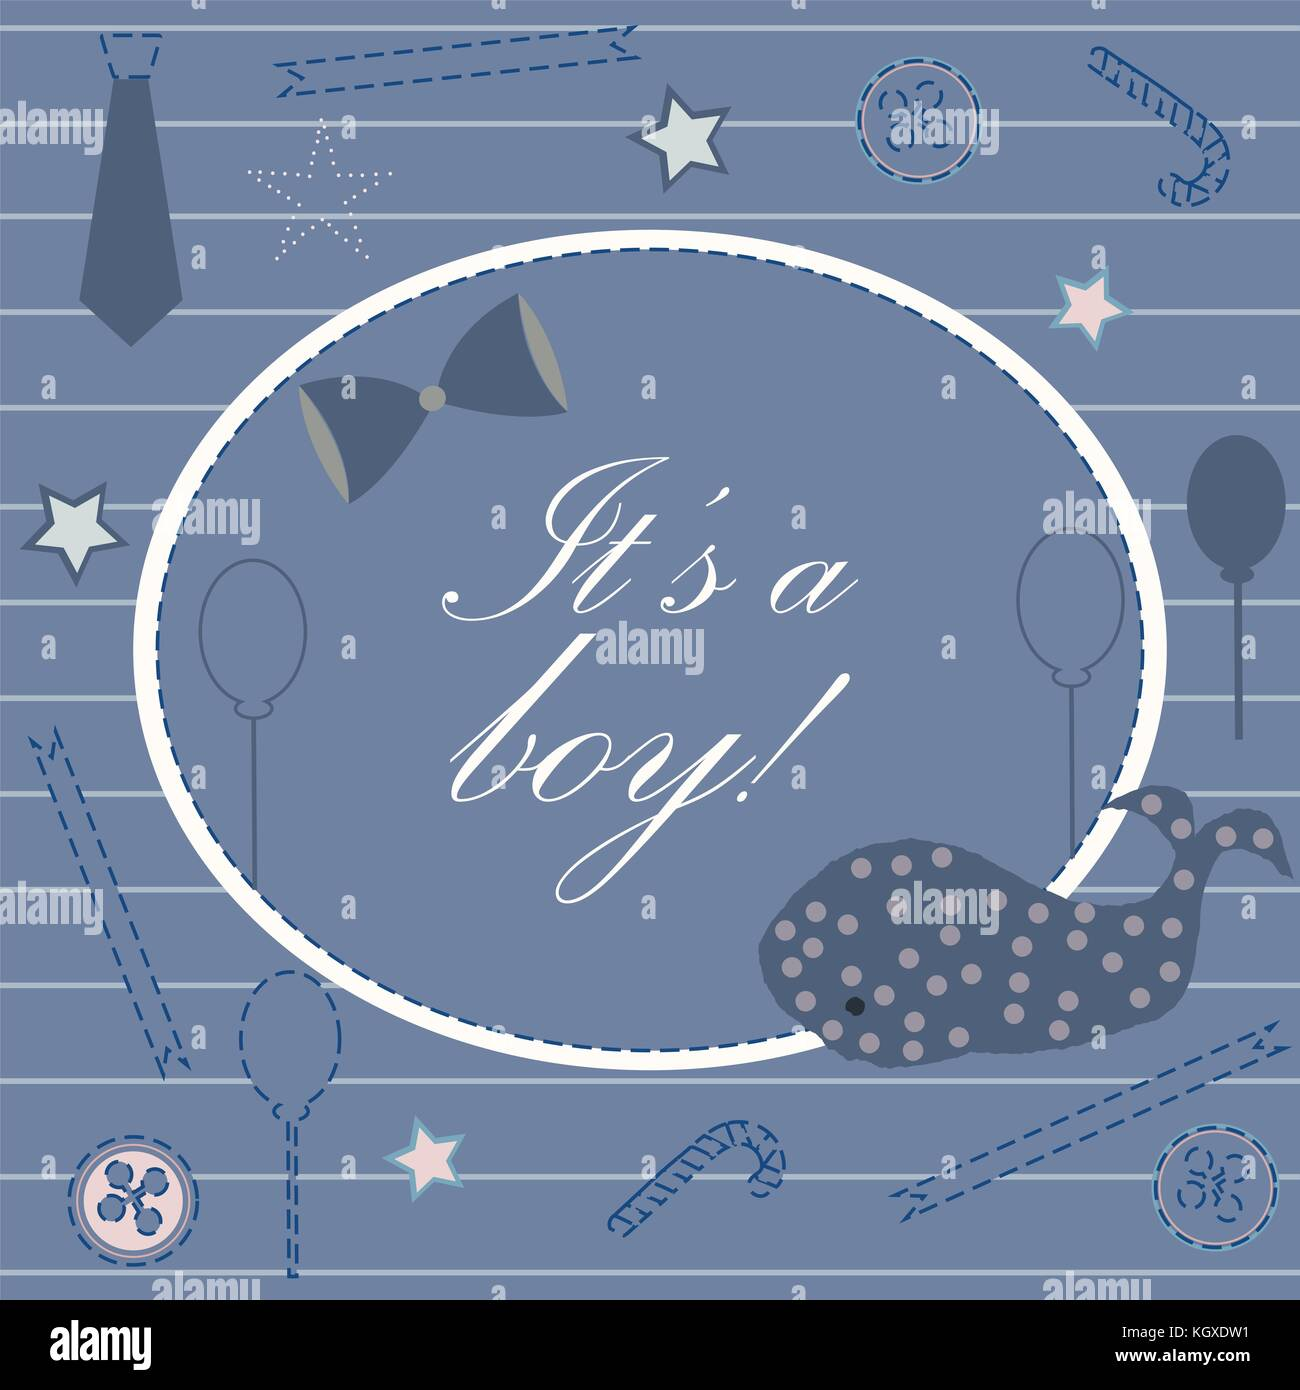 Baby boy birth announcement baby shower invitation card cute whale baby boy birth announcement baby shower invitation card cute whale announces the arrival of boy card design on teal background with ribbons tie b filmwisefo